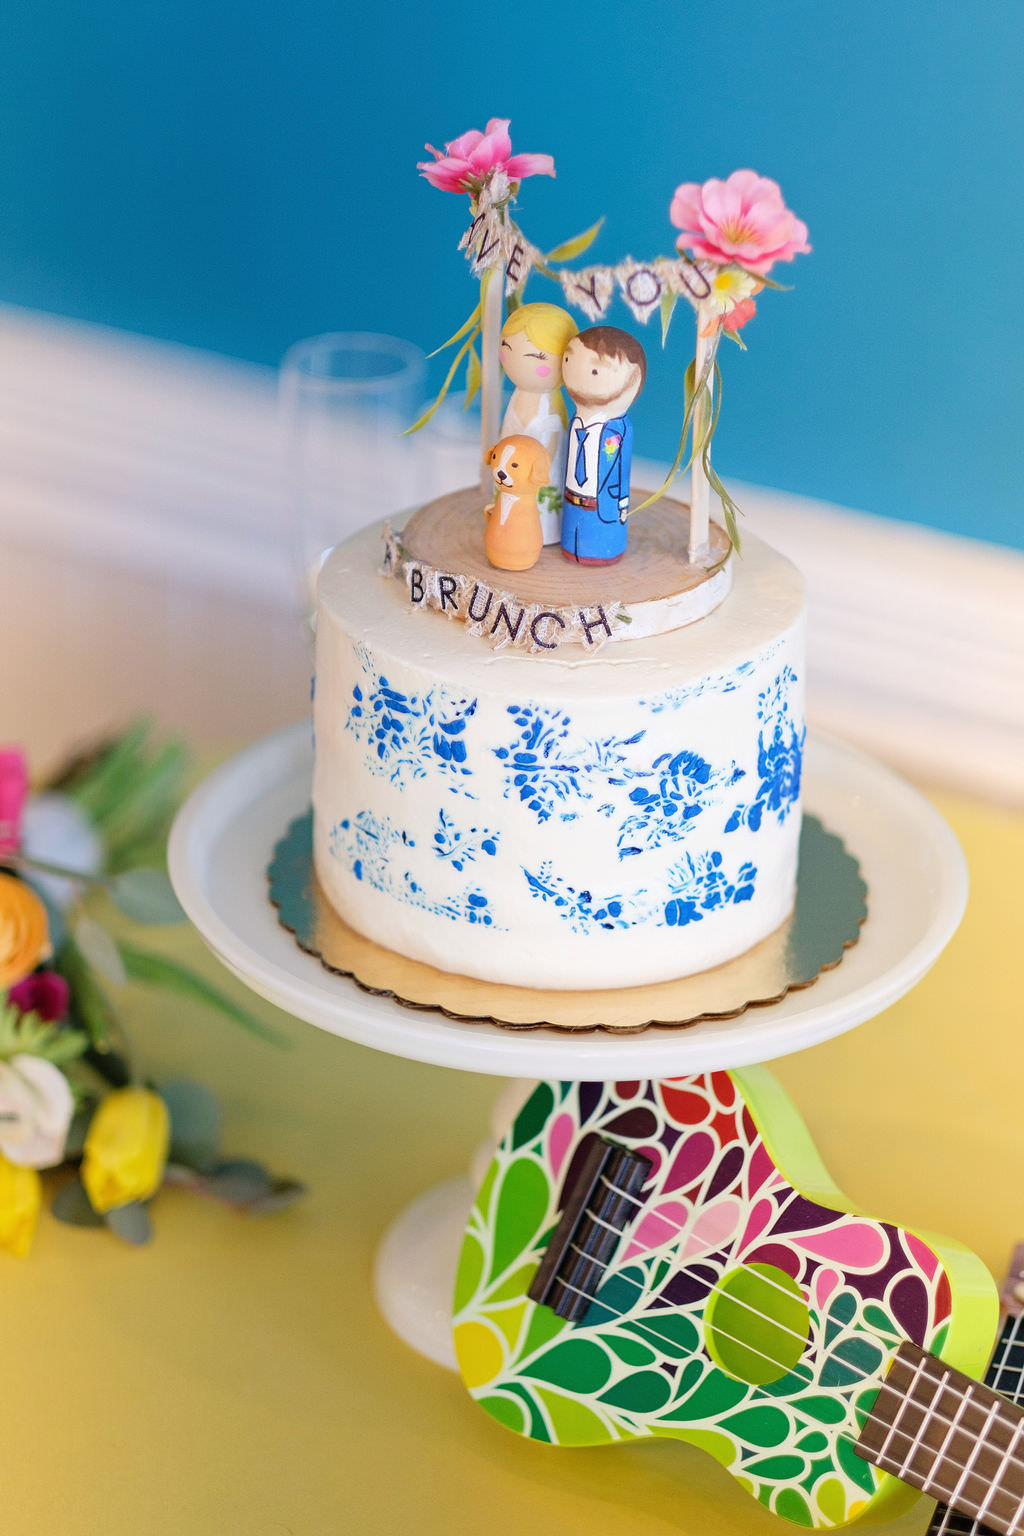 Tropical Inspired White and Blue Floral Printed One Tier Wedding Cake with Custom Bride, Groom and Dog Cake Topper | Tampa Bay Wedding Photographer Marc Edwards Photographs